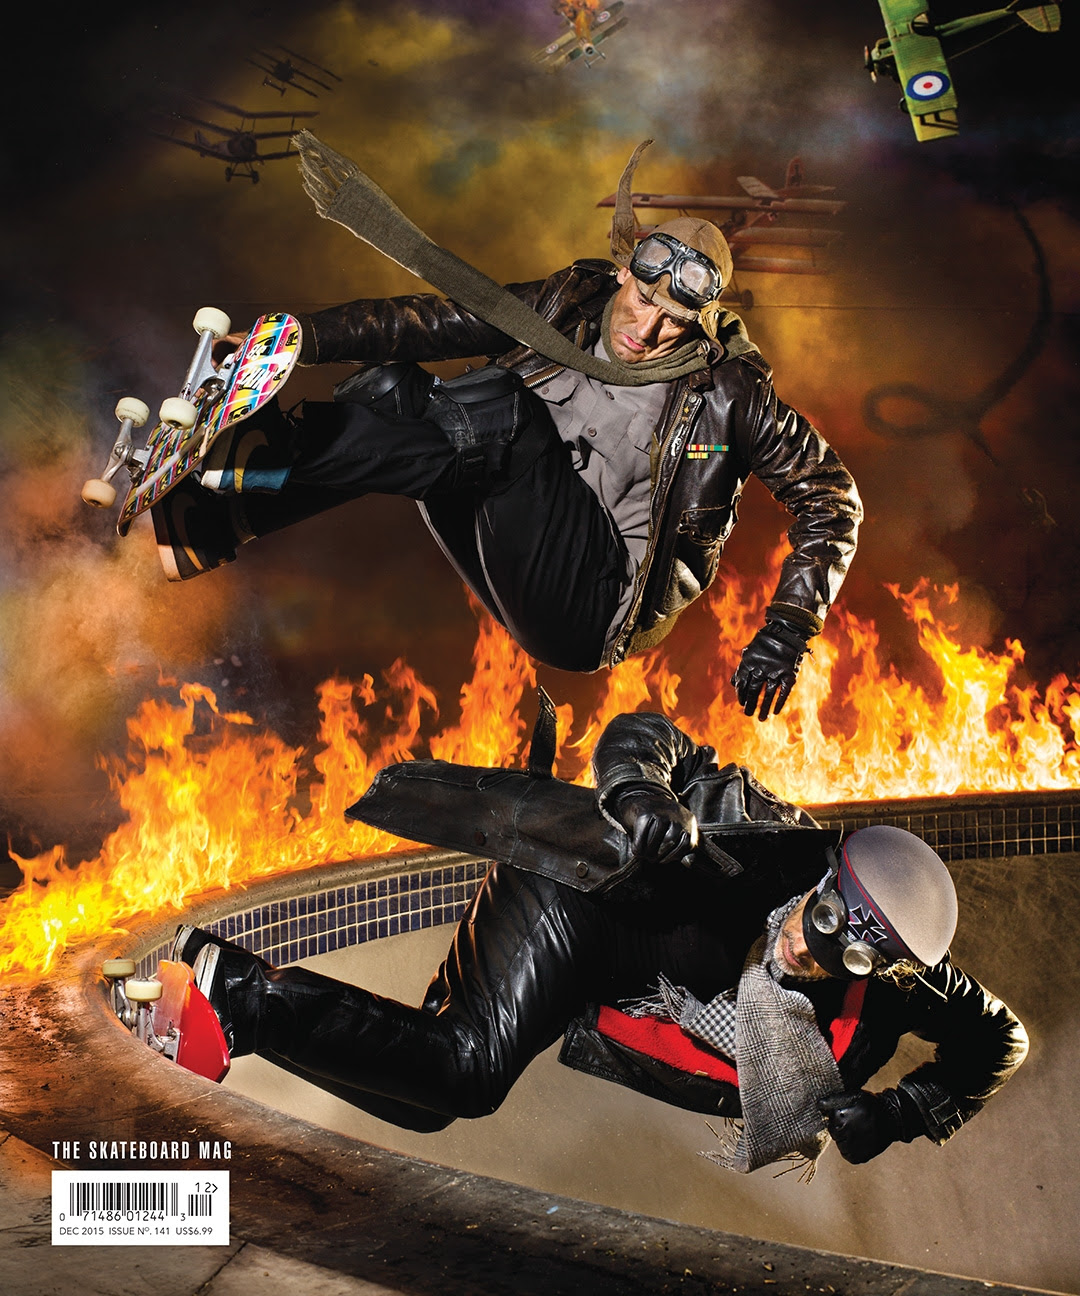 Lance Mountain Steve Olson : DOGFIGHT BEHIND THE COVER : the skateboard mag 141